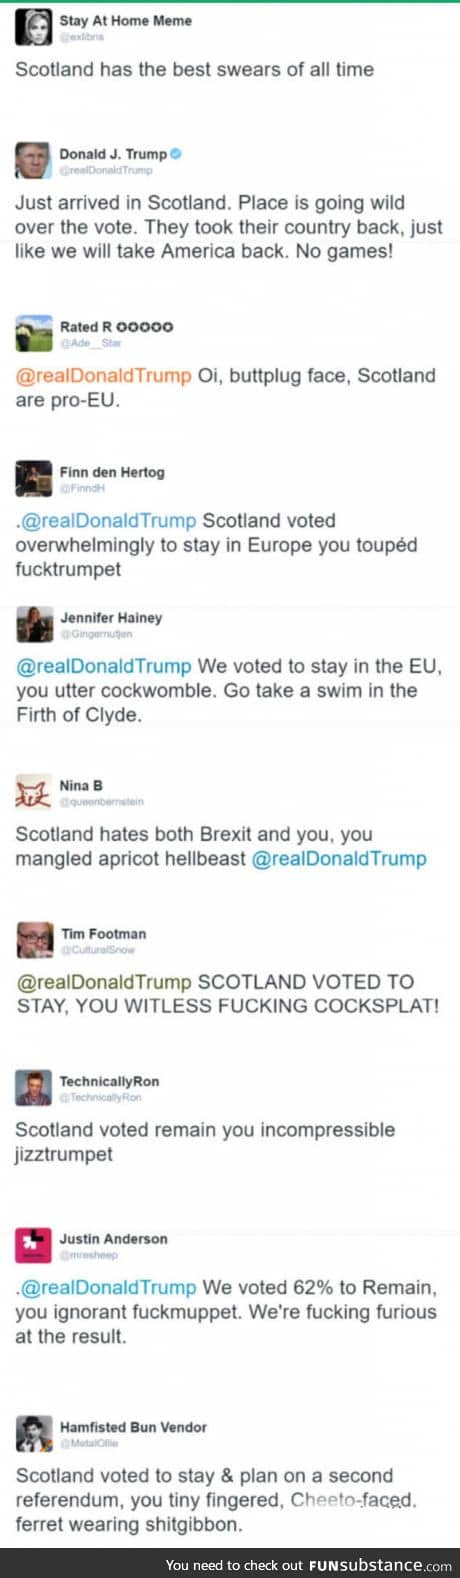 Scottish insults are the best